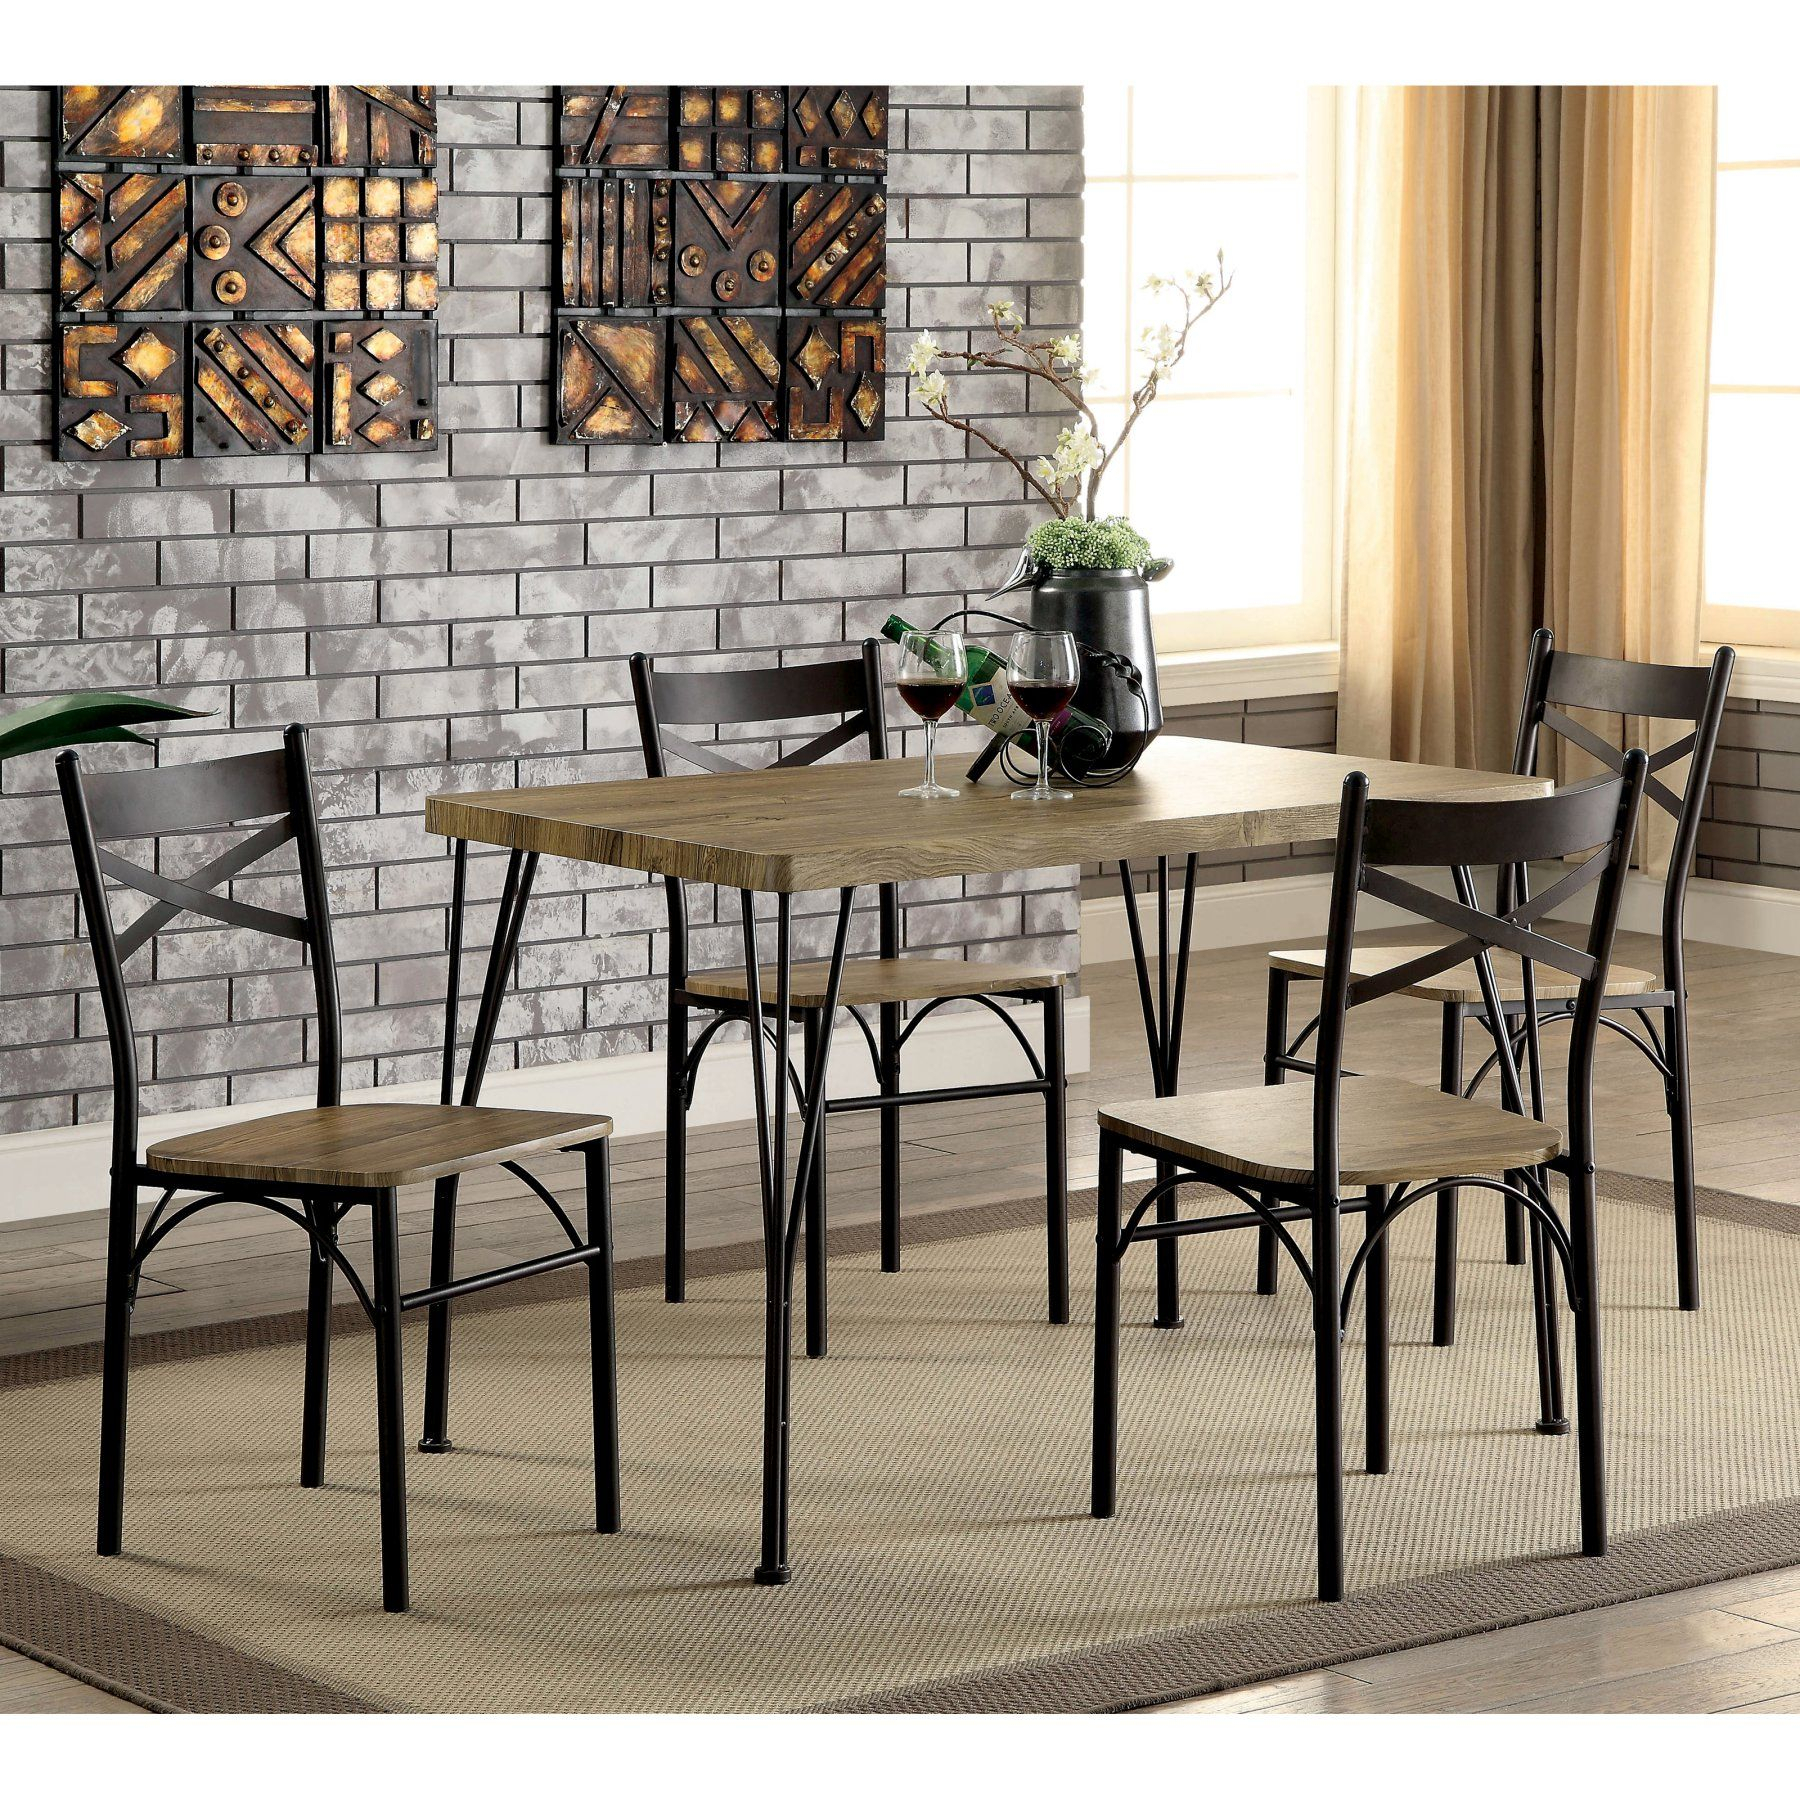 Furniture Of America Amonica 5 Piece Casual Dining Set En 2019 Pertaining To Current Winsted 4 Piece Counter Height Dining Sets (View 20 of 20)